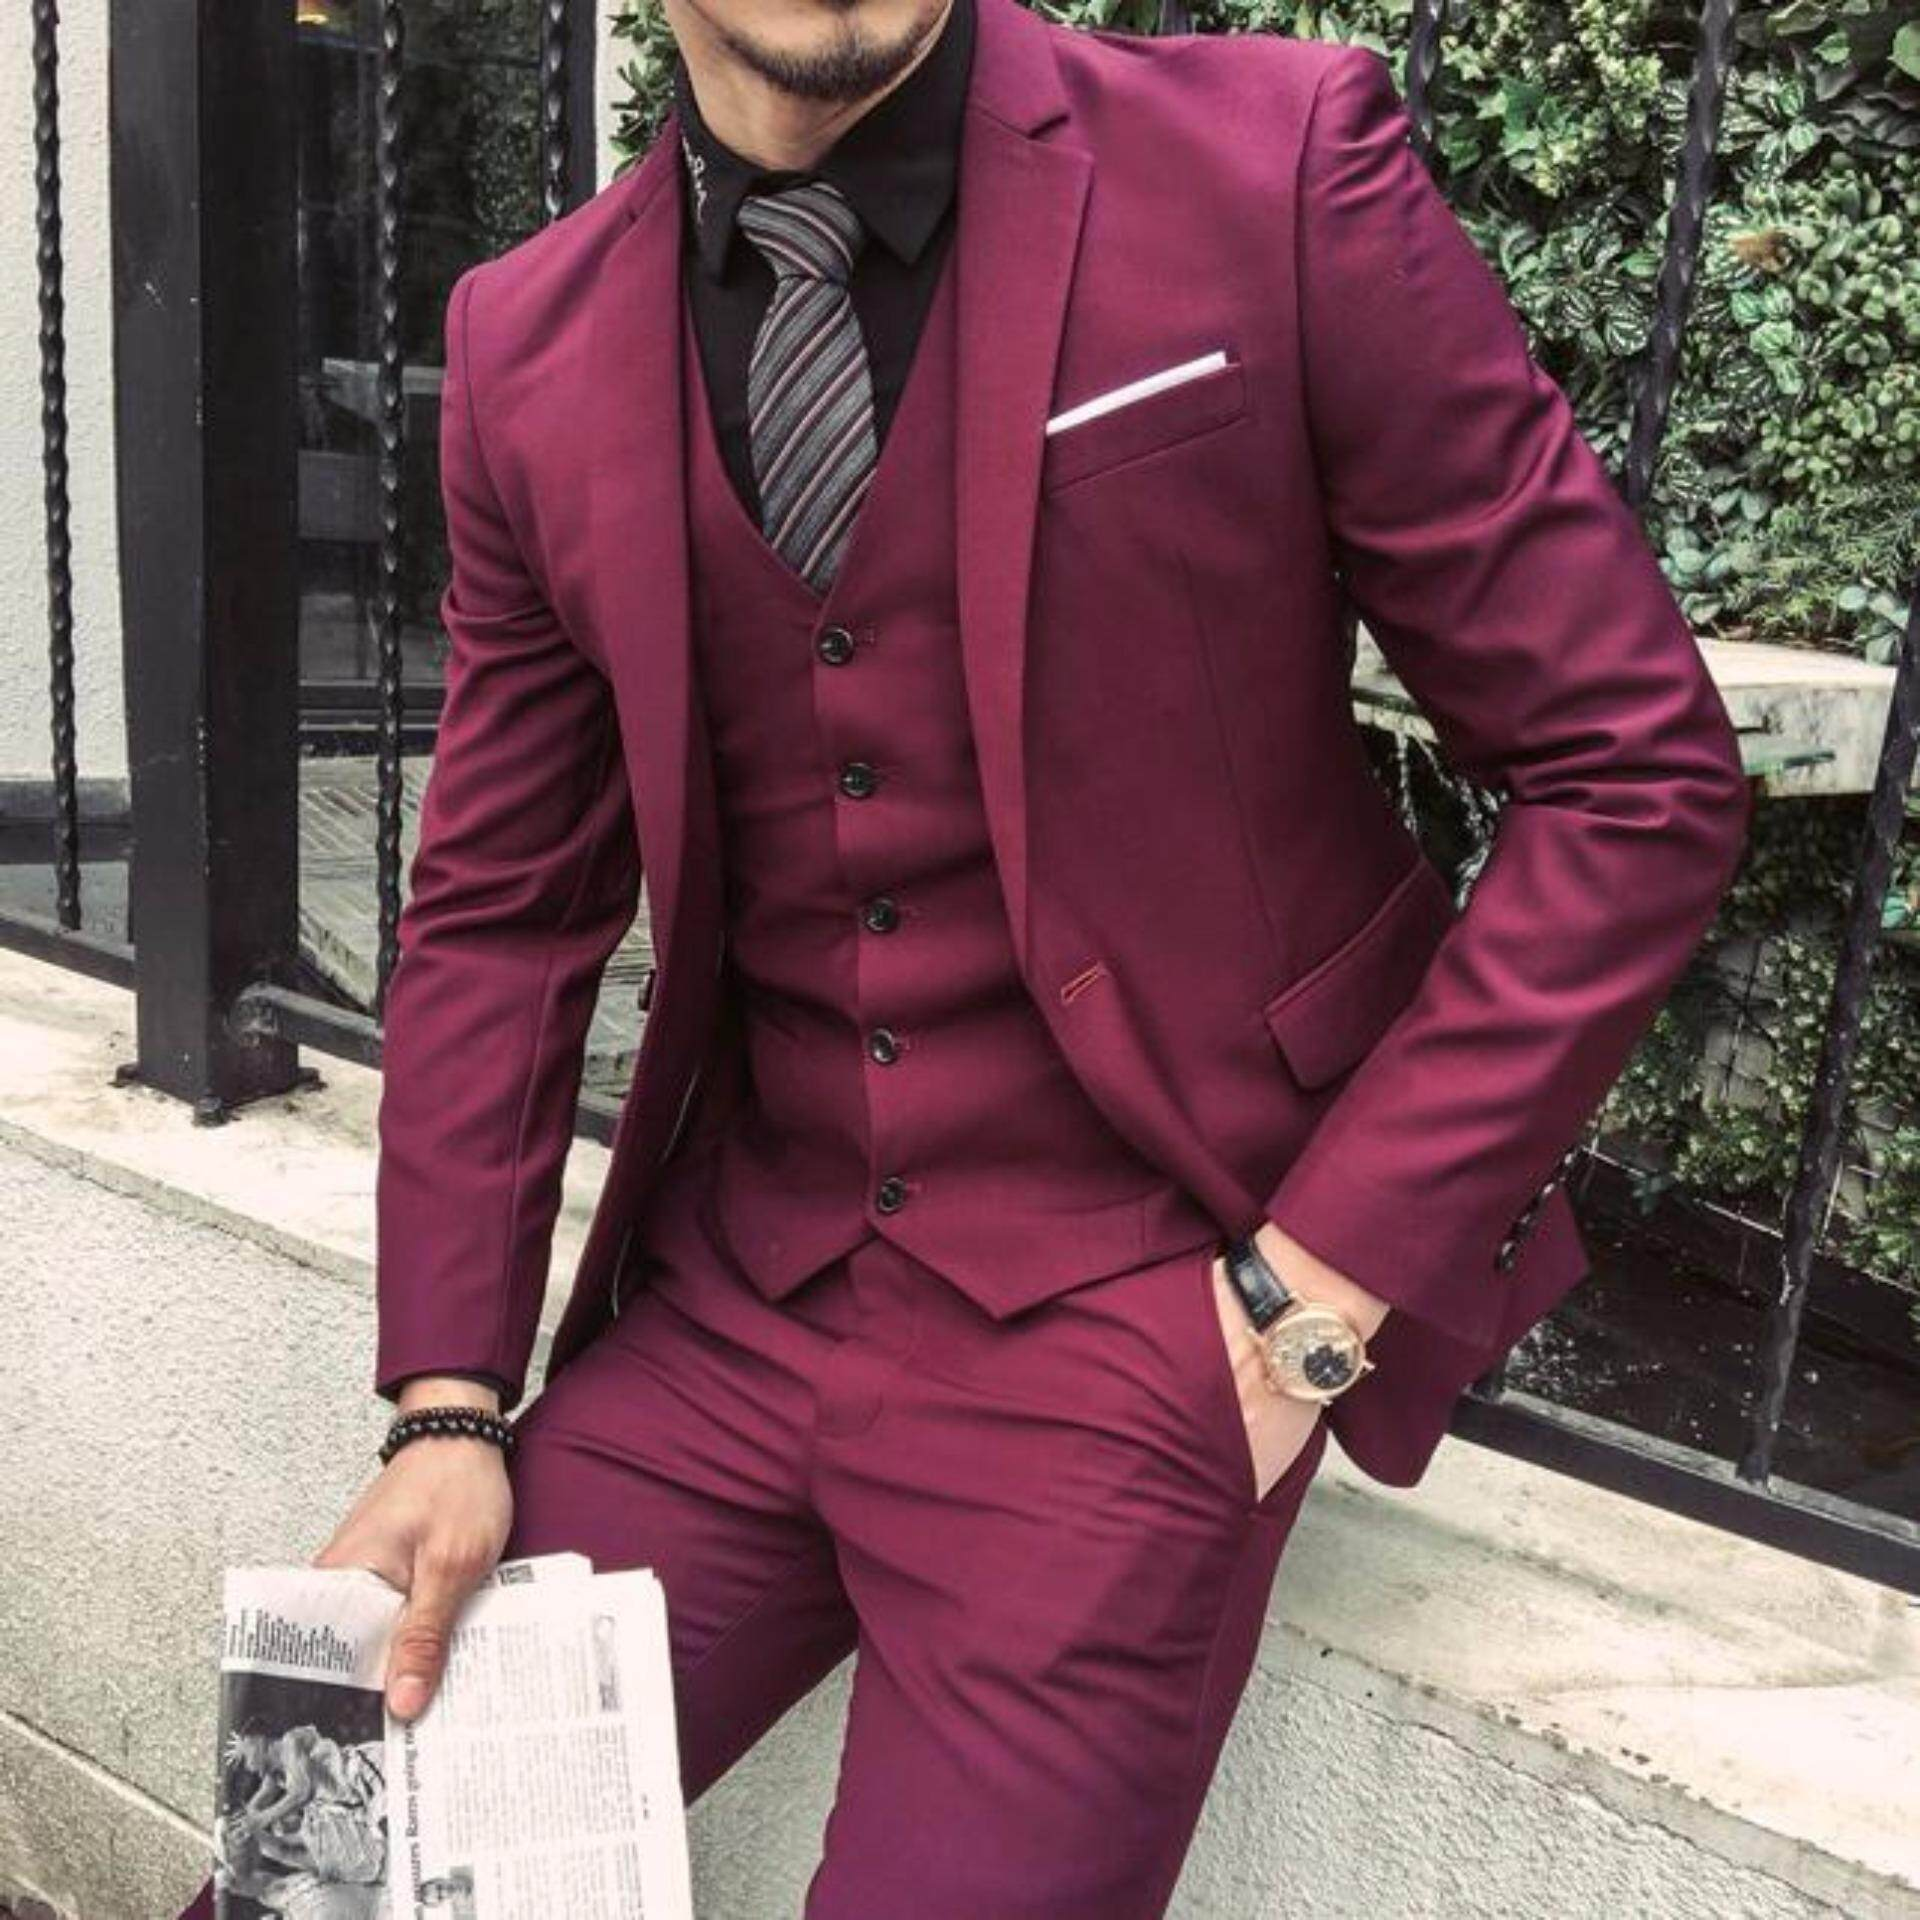 afaae464d1 Suits for Men for sale - Formal Suits online brands